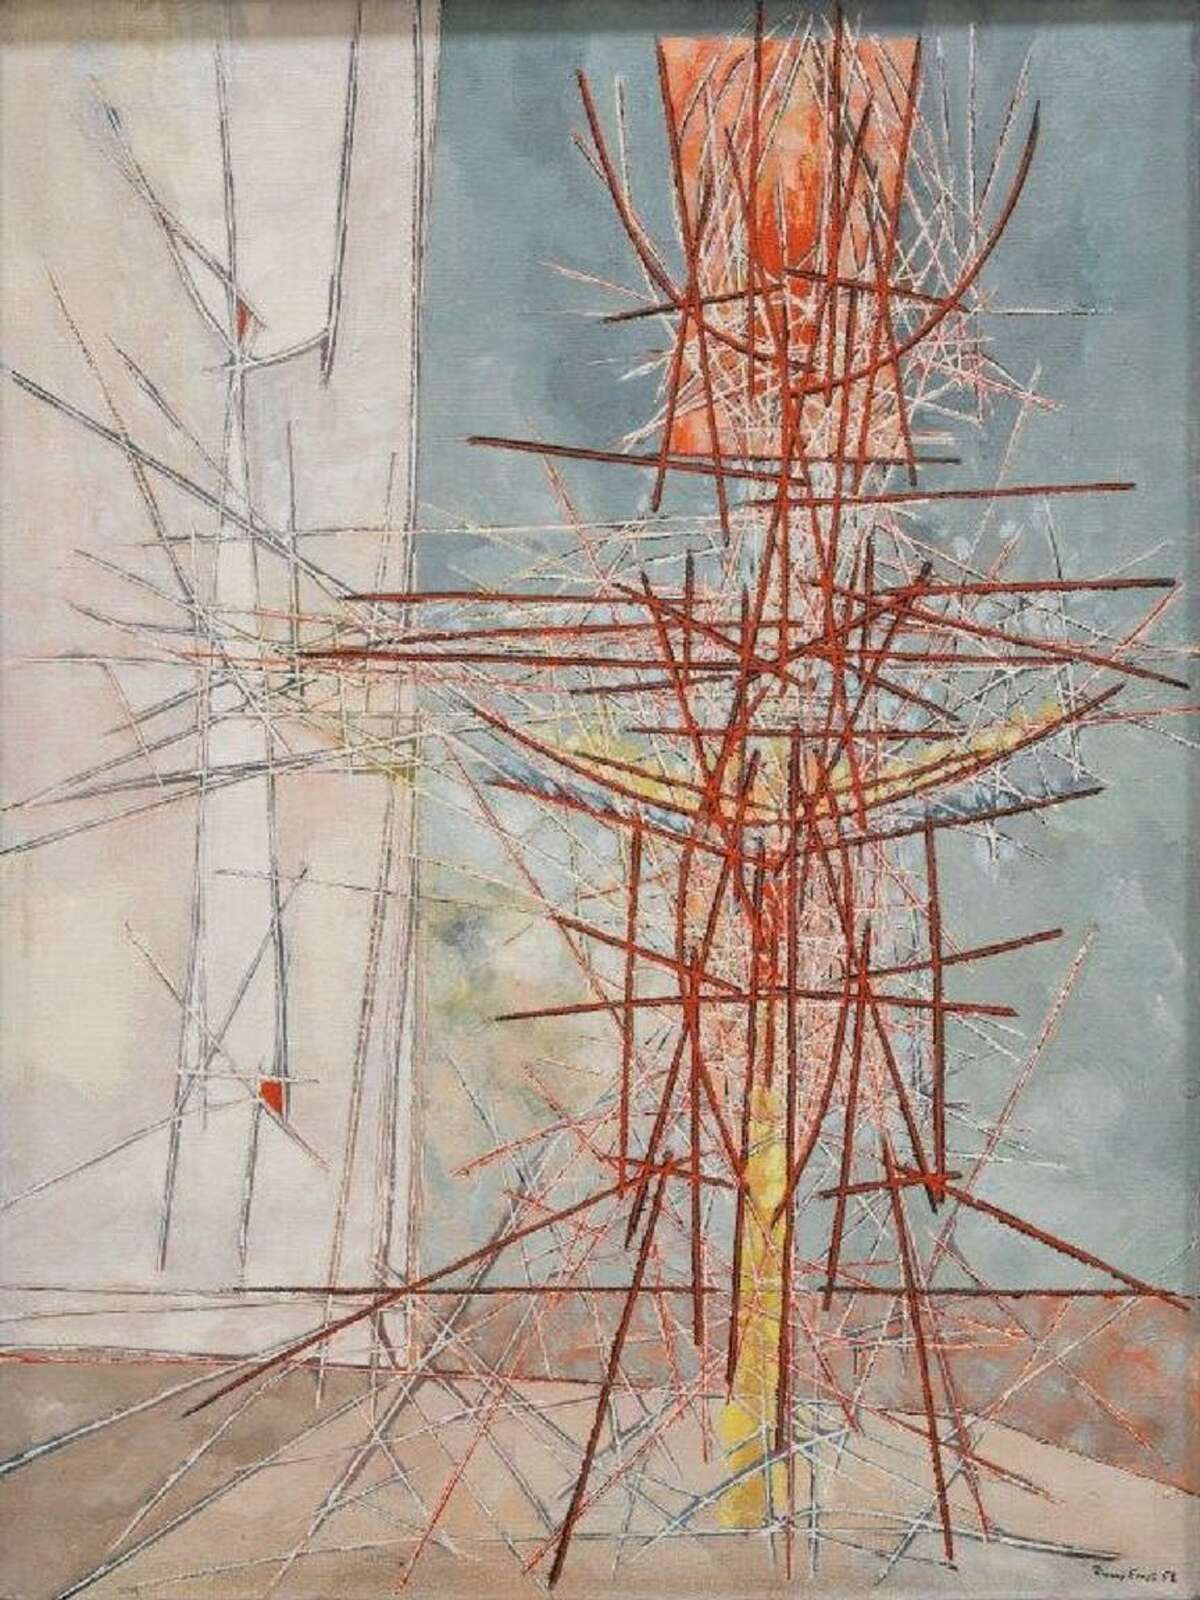 Jimmy Ernst's Untitled, 1958. Oil on canvas.